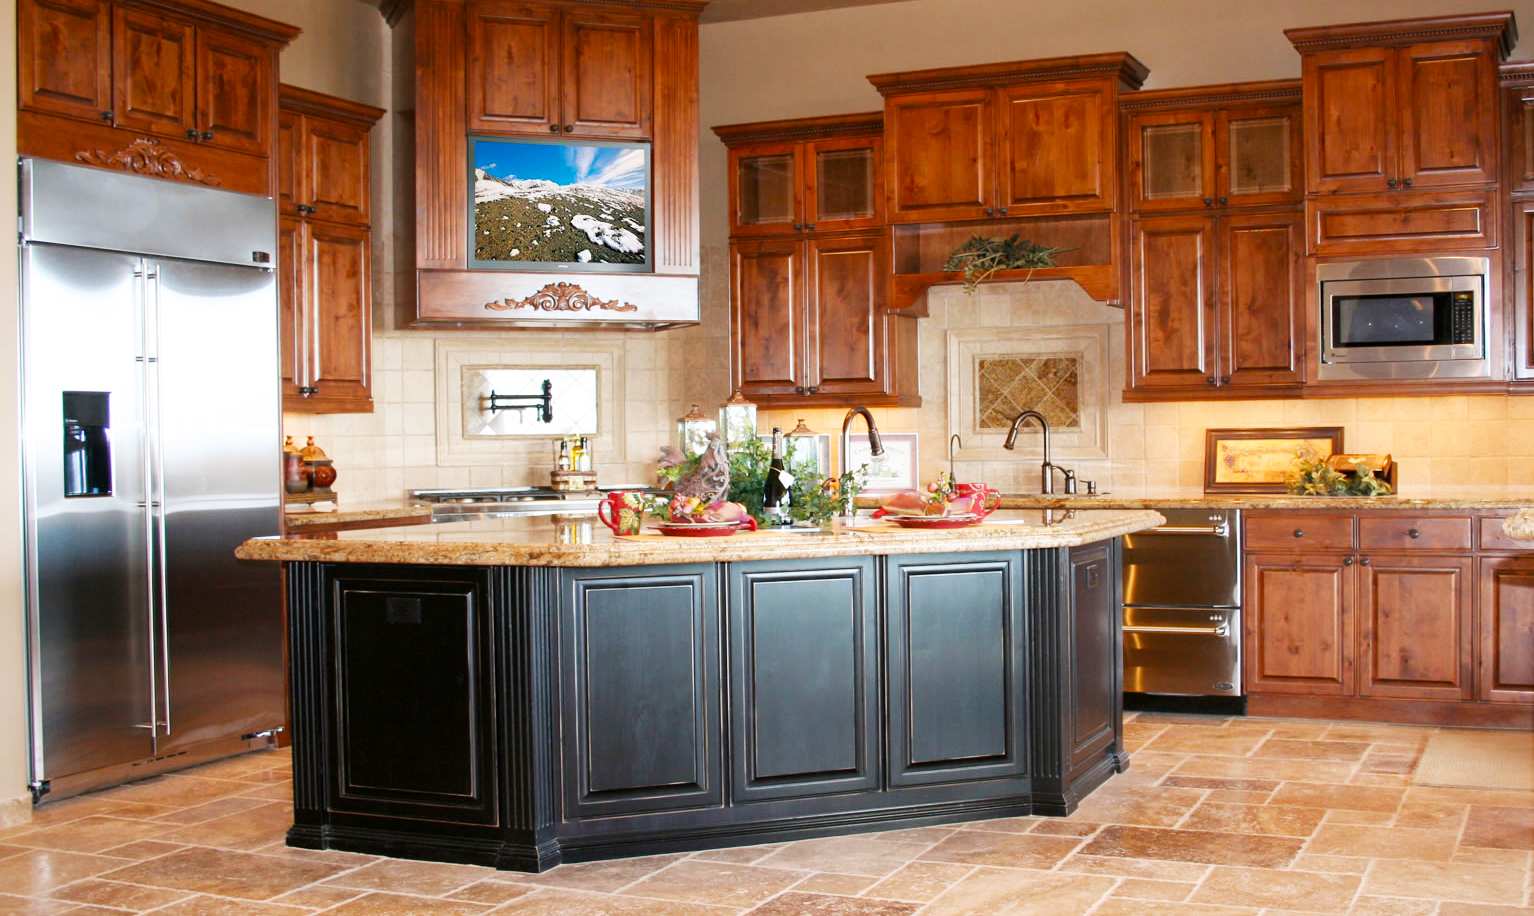 custom-kitchen-cabinets-for-new-kitchen-remodel-design-with-black-oak-kitchen-island-and-kitchen-cabinet-doors-refacing